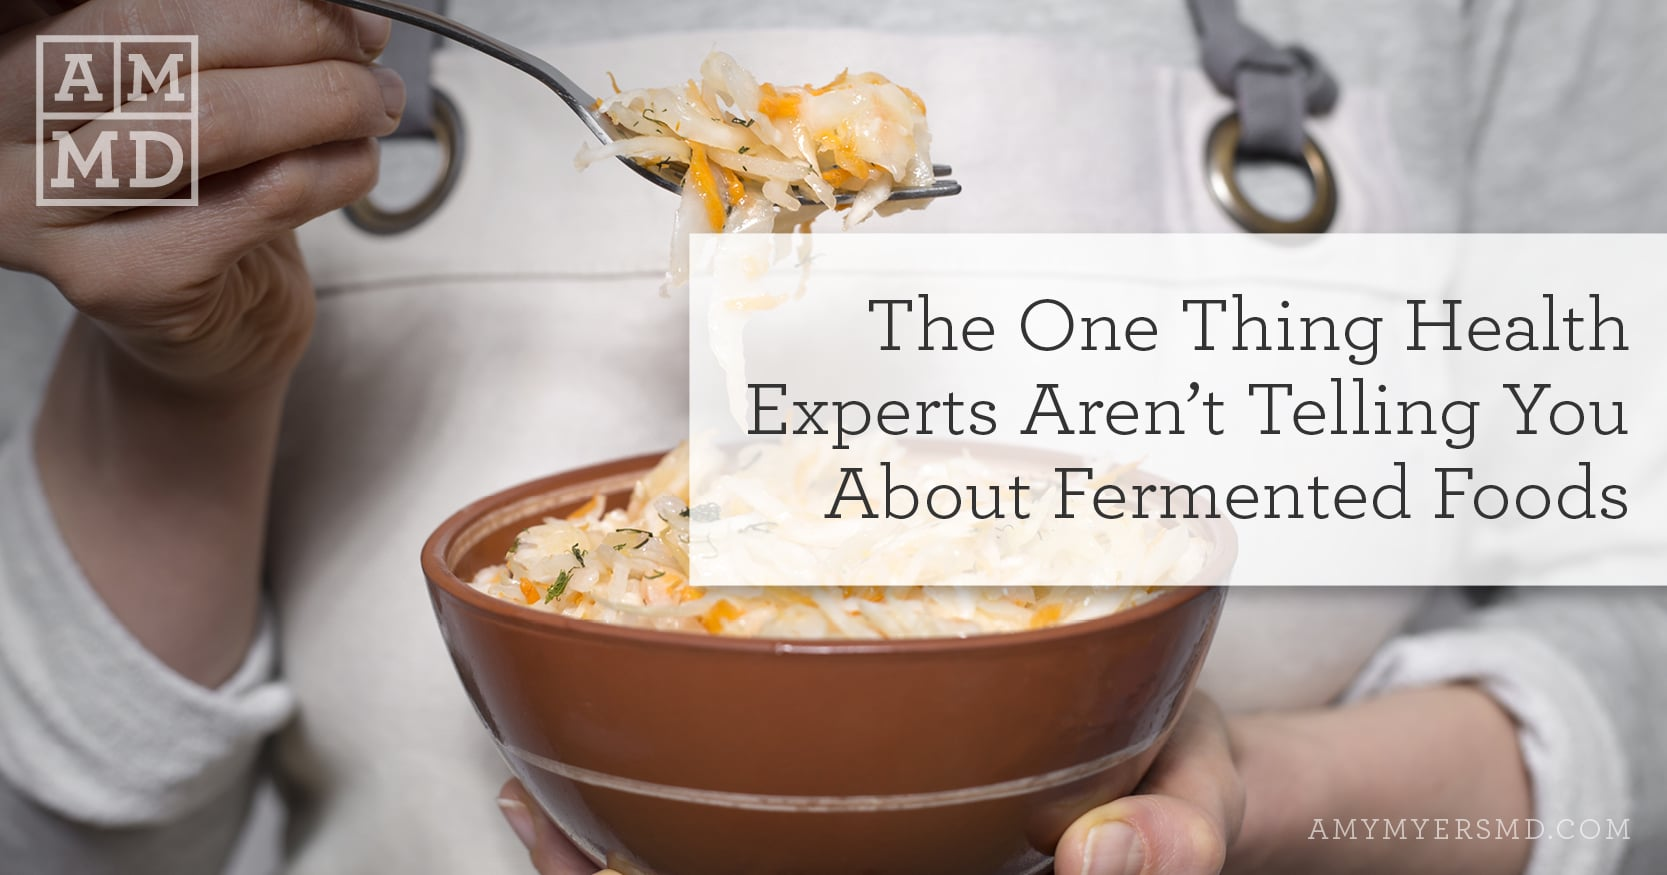 fermented foods and health experts